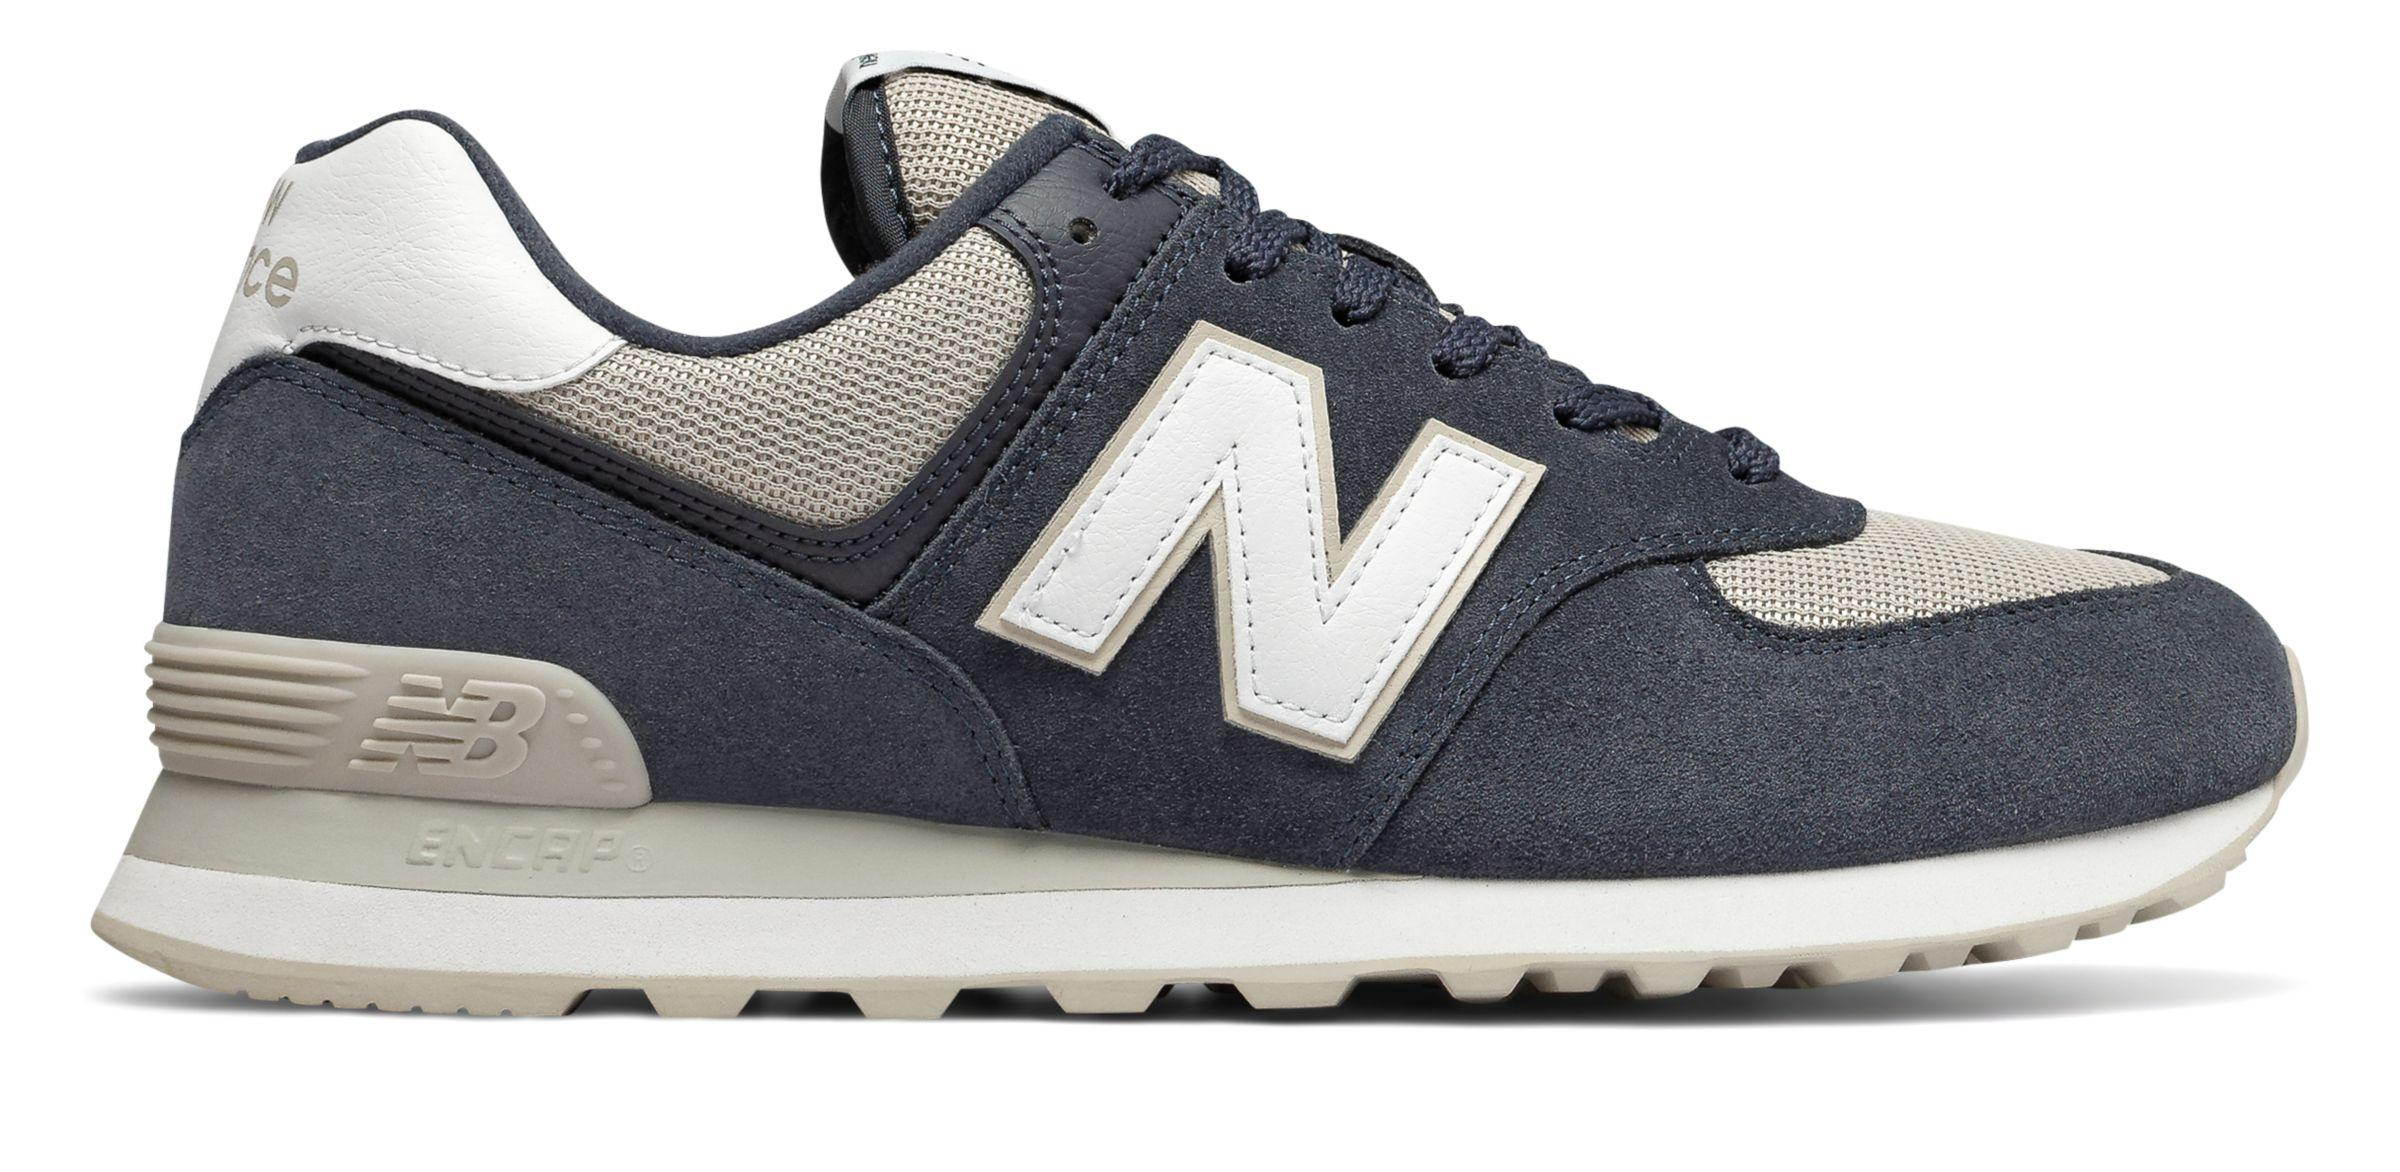 New Balance Rubber 574 in Gray for Men - Lyst